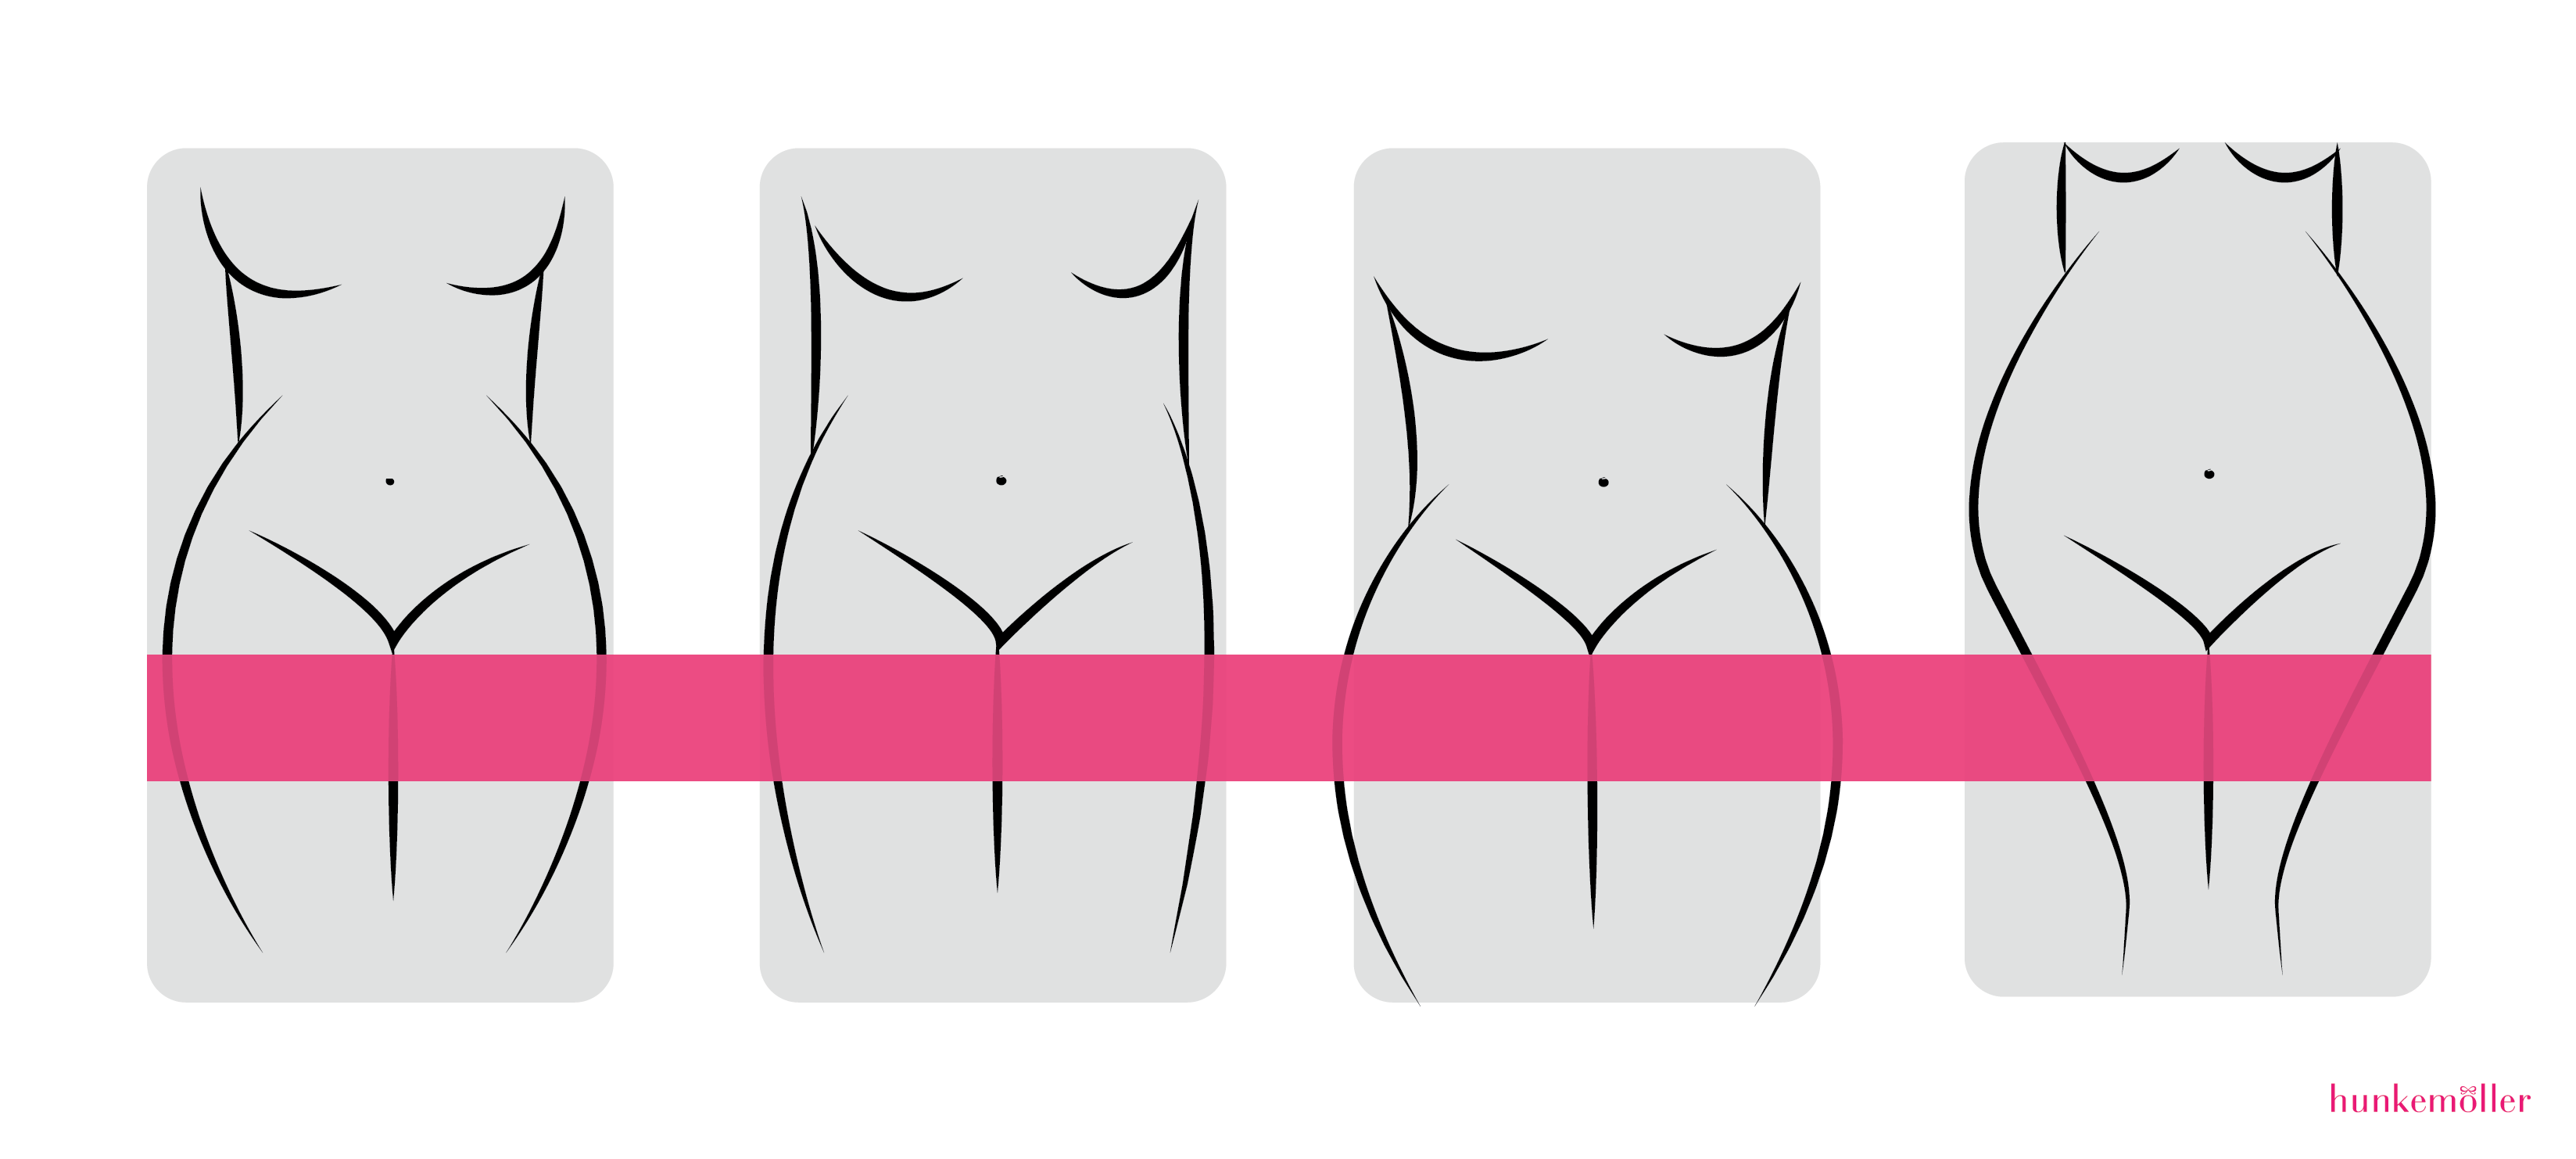 https://www.hunkemoller.nl/on/demandware.static/-/Library-Sites-hkm-content-global/nl_NL/dw0ffd6d3d/sizetable%20lace%20thigh%20bands.png